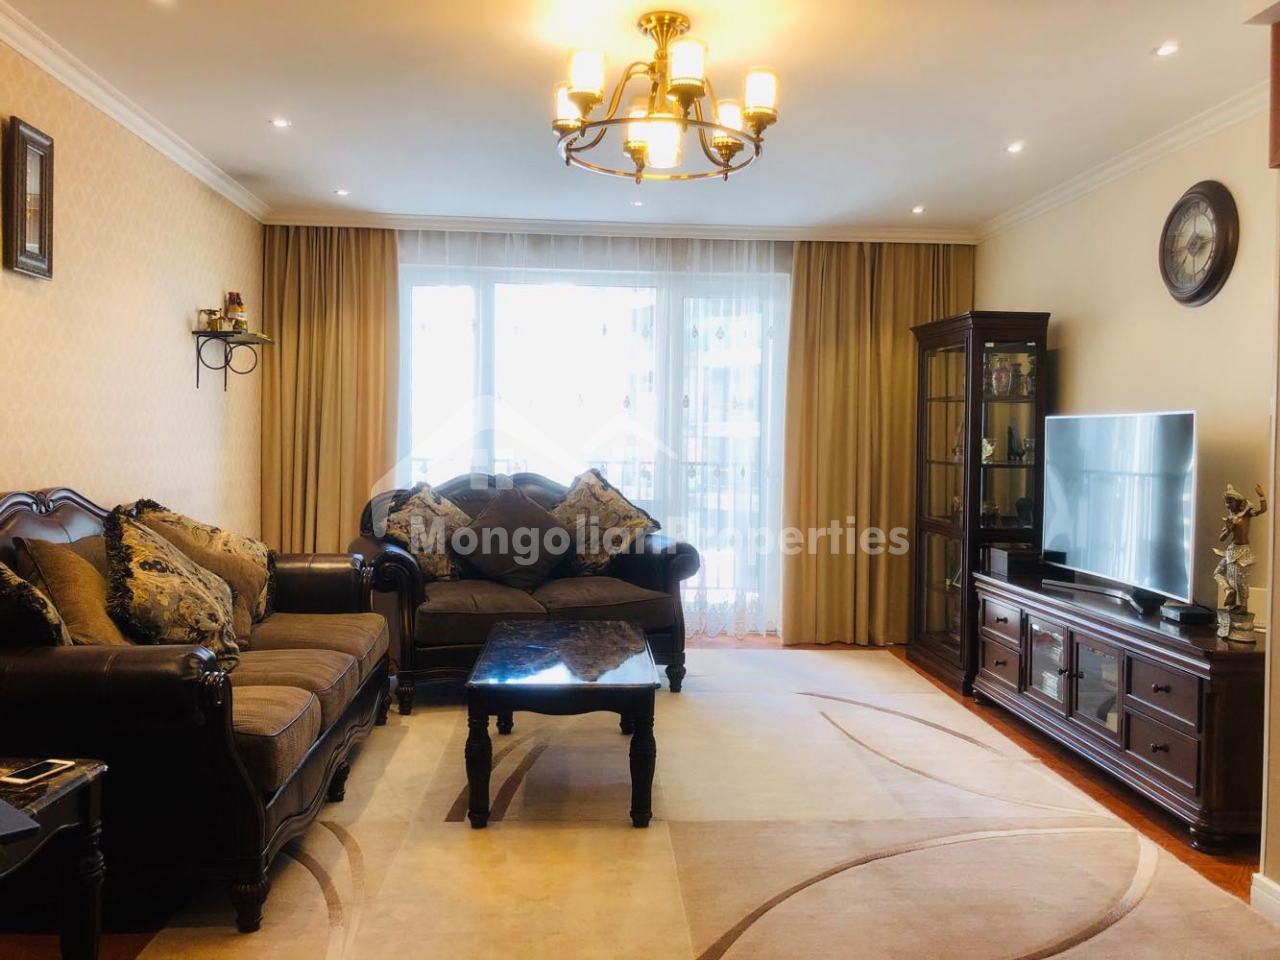 For rent: Comfy 2 bedroom apartment is for rent at Encanto tower